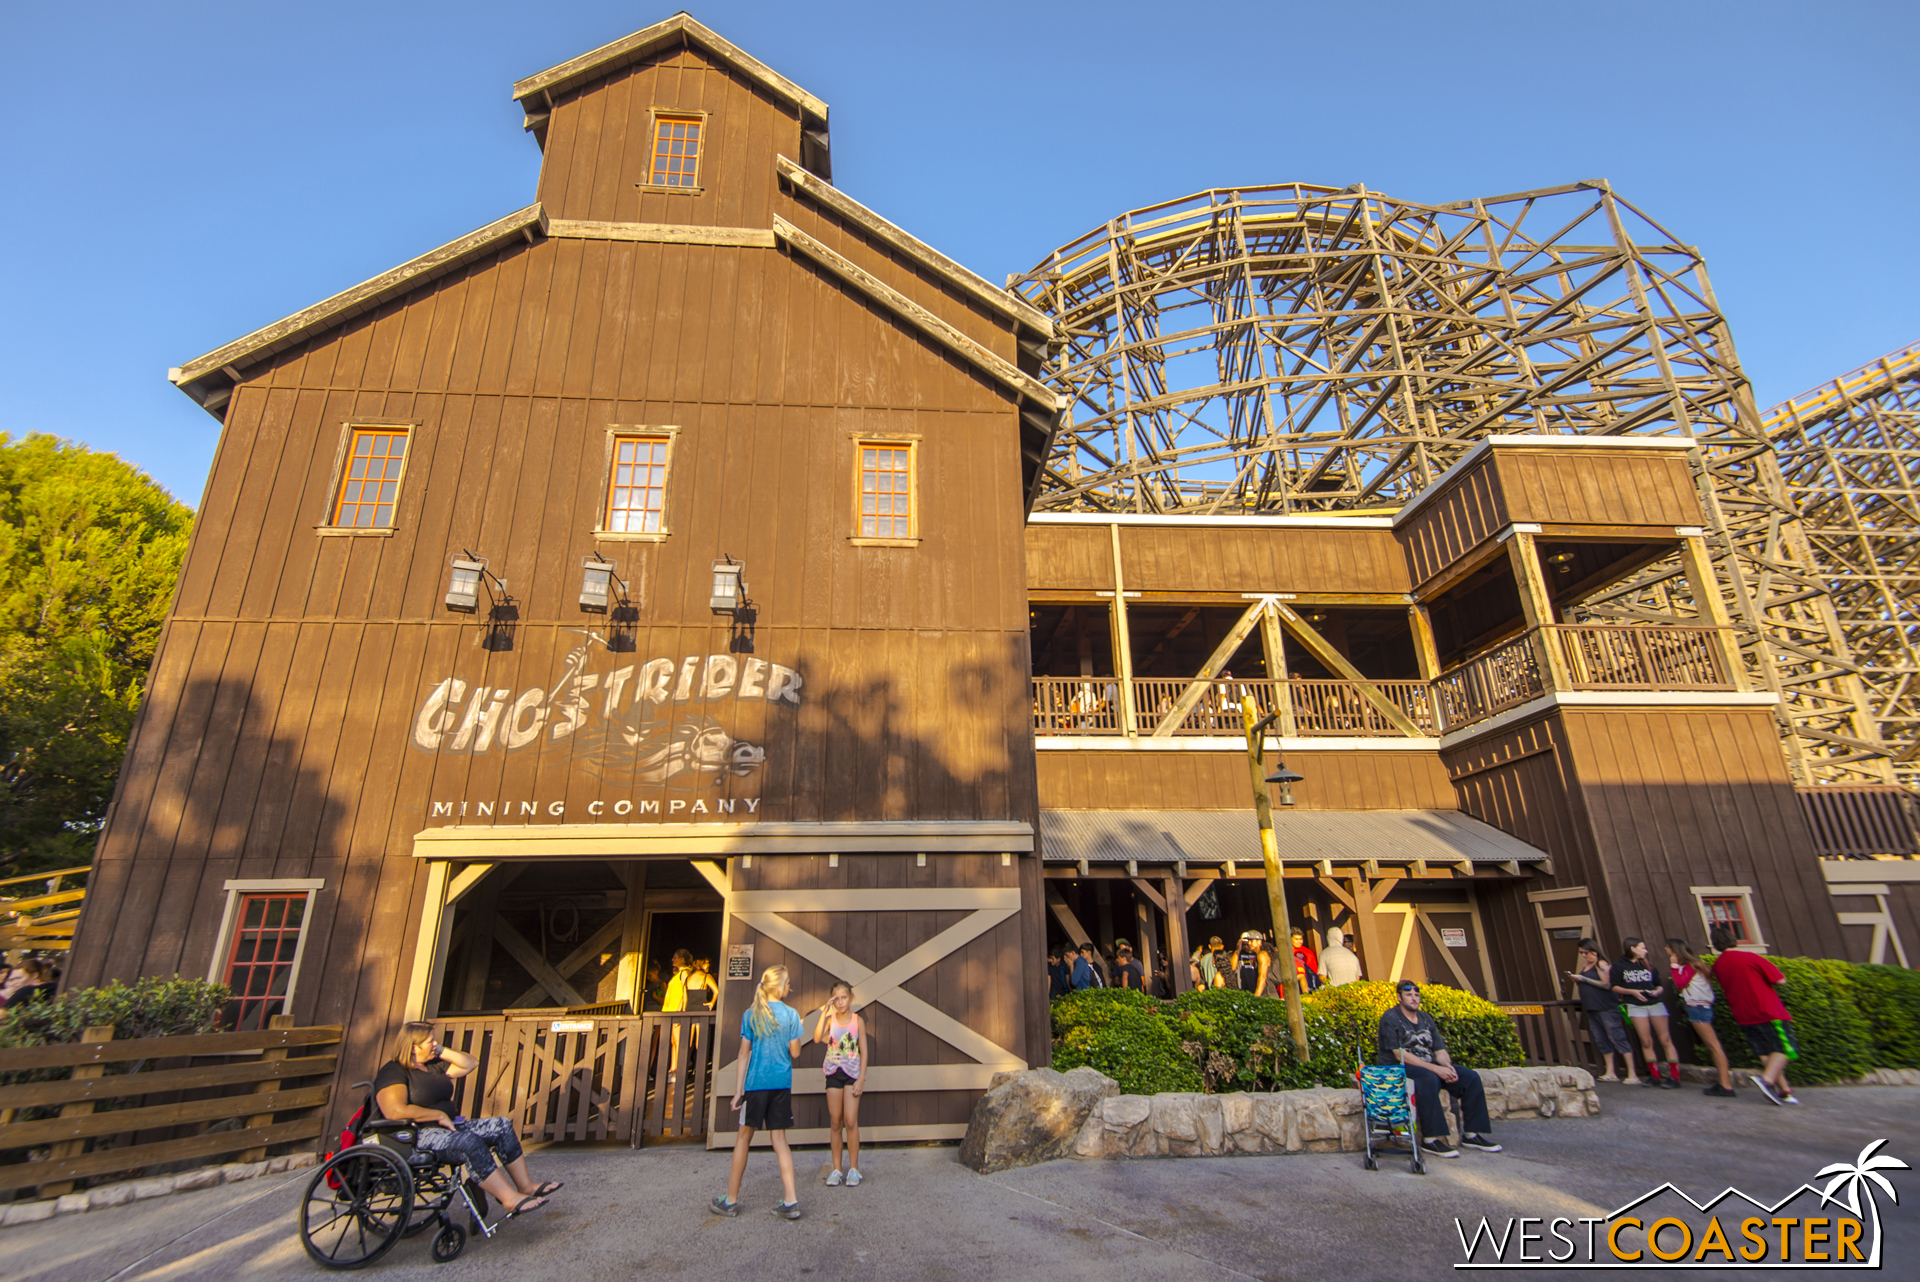 And really, just the refurbished coaster alone is worth taking a trip back to Knott's. That's before you move onto Ghost Town Alive! and the refurbished area.